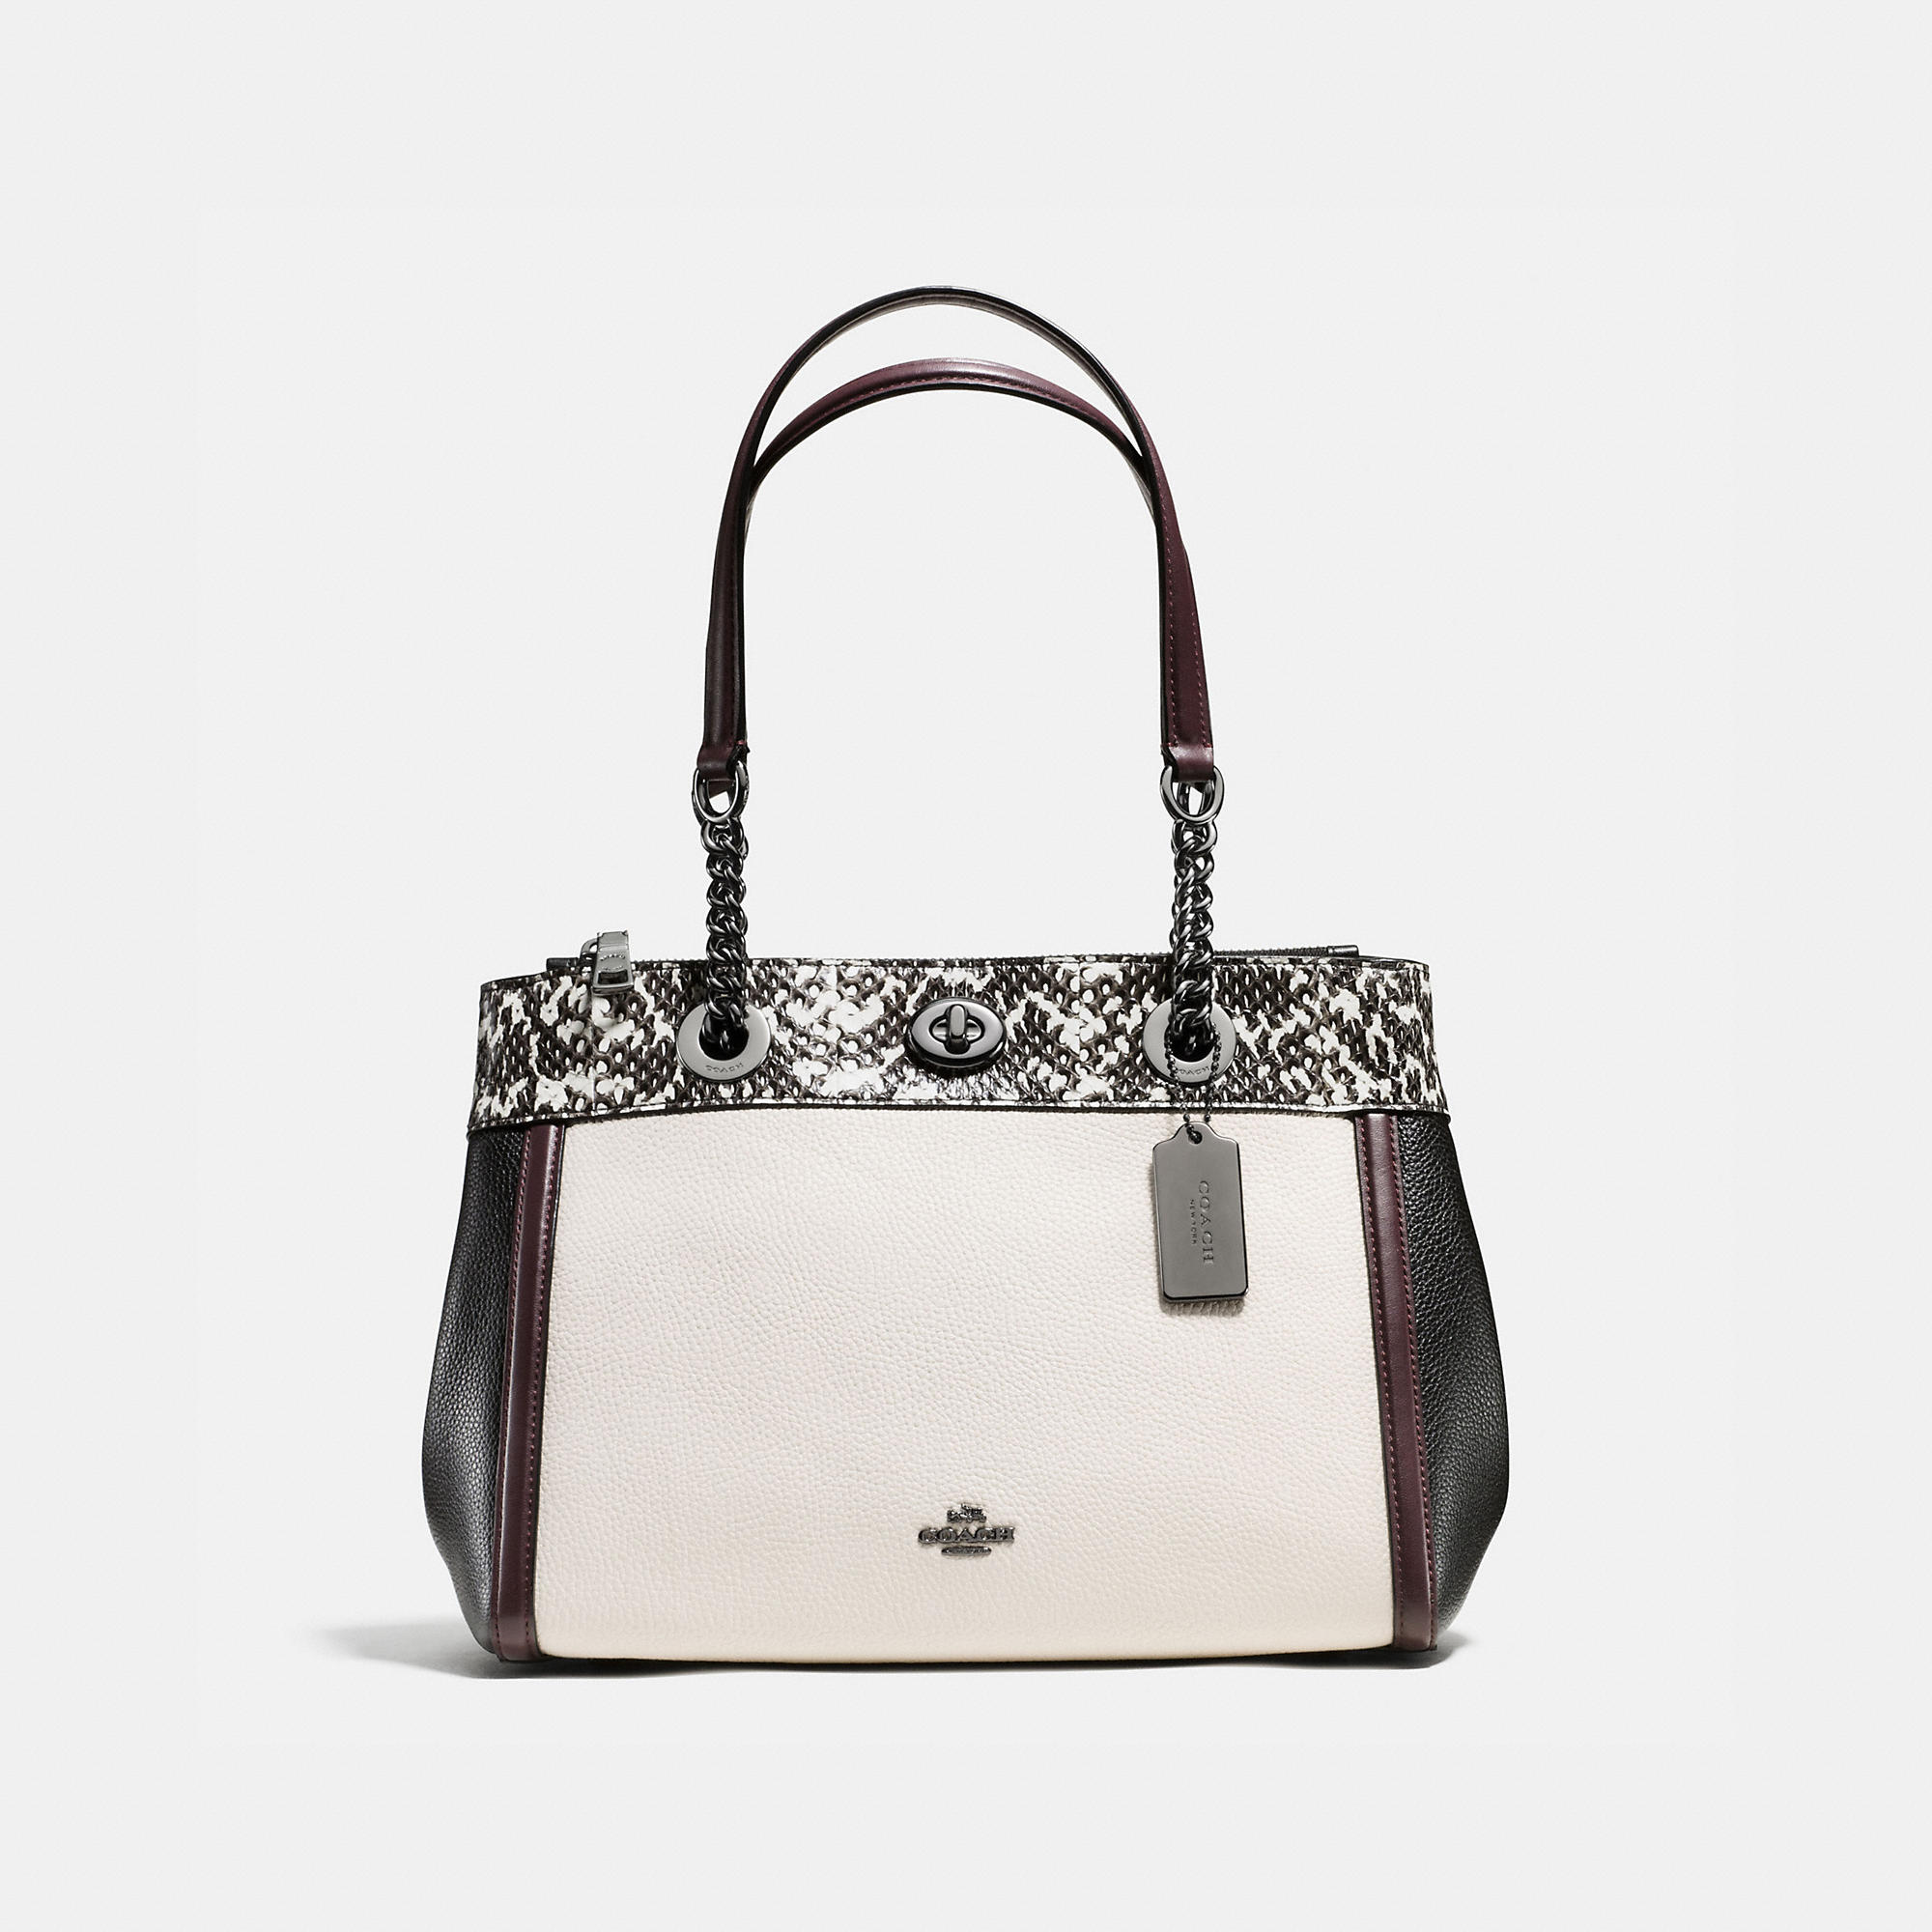 Coach Turnlock Edie Carryall In Colorblock Polished Pebble Leather With Snake Trim